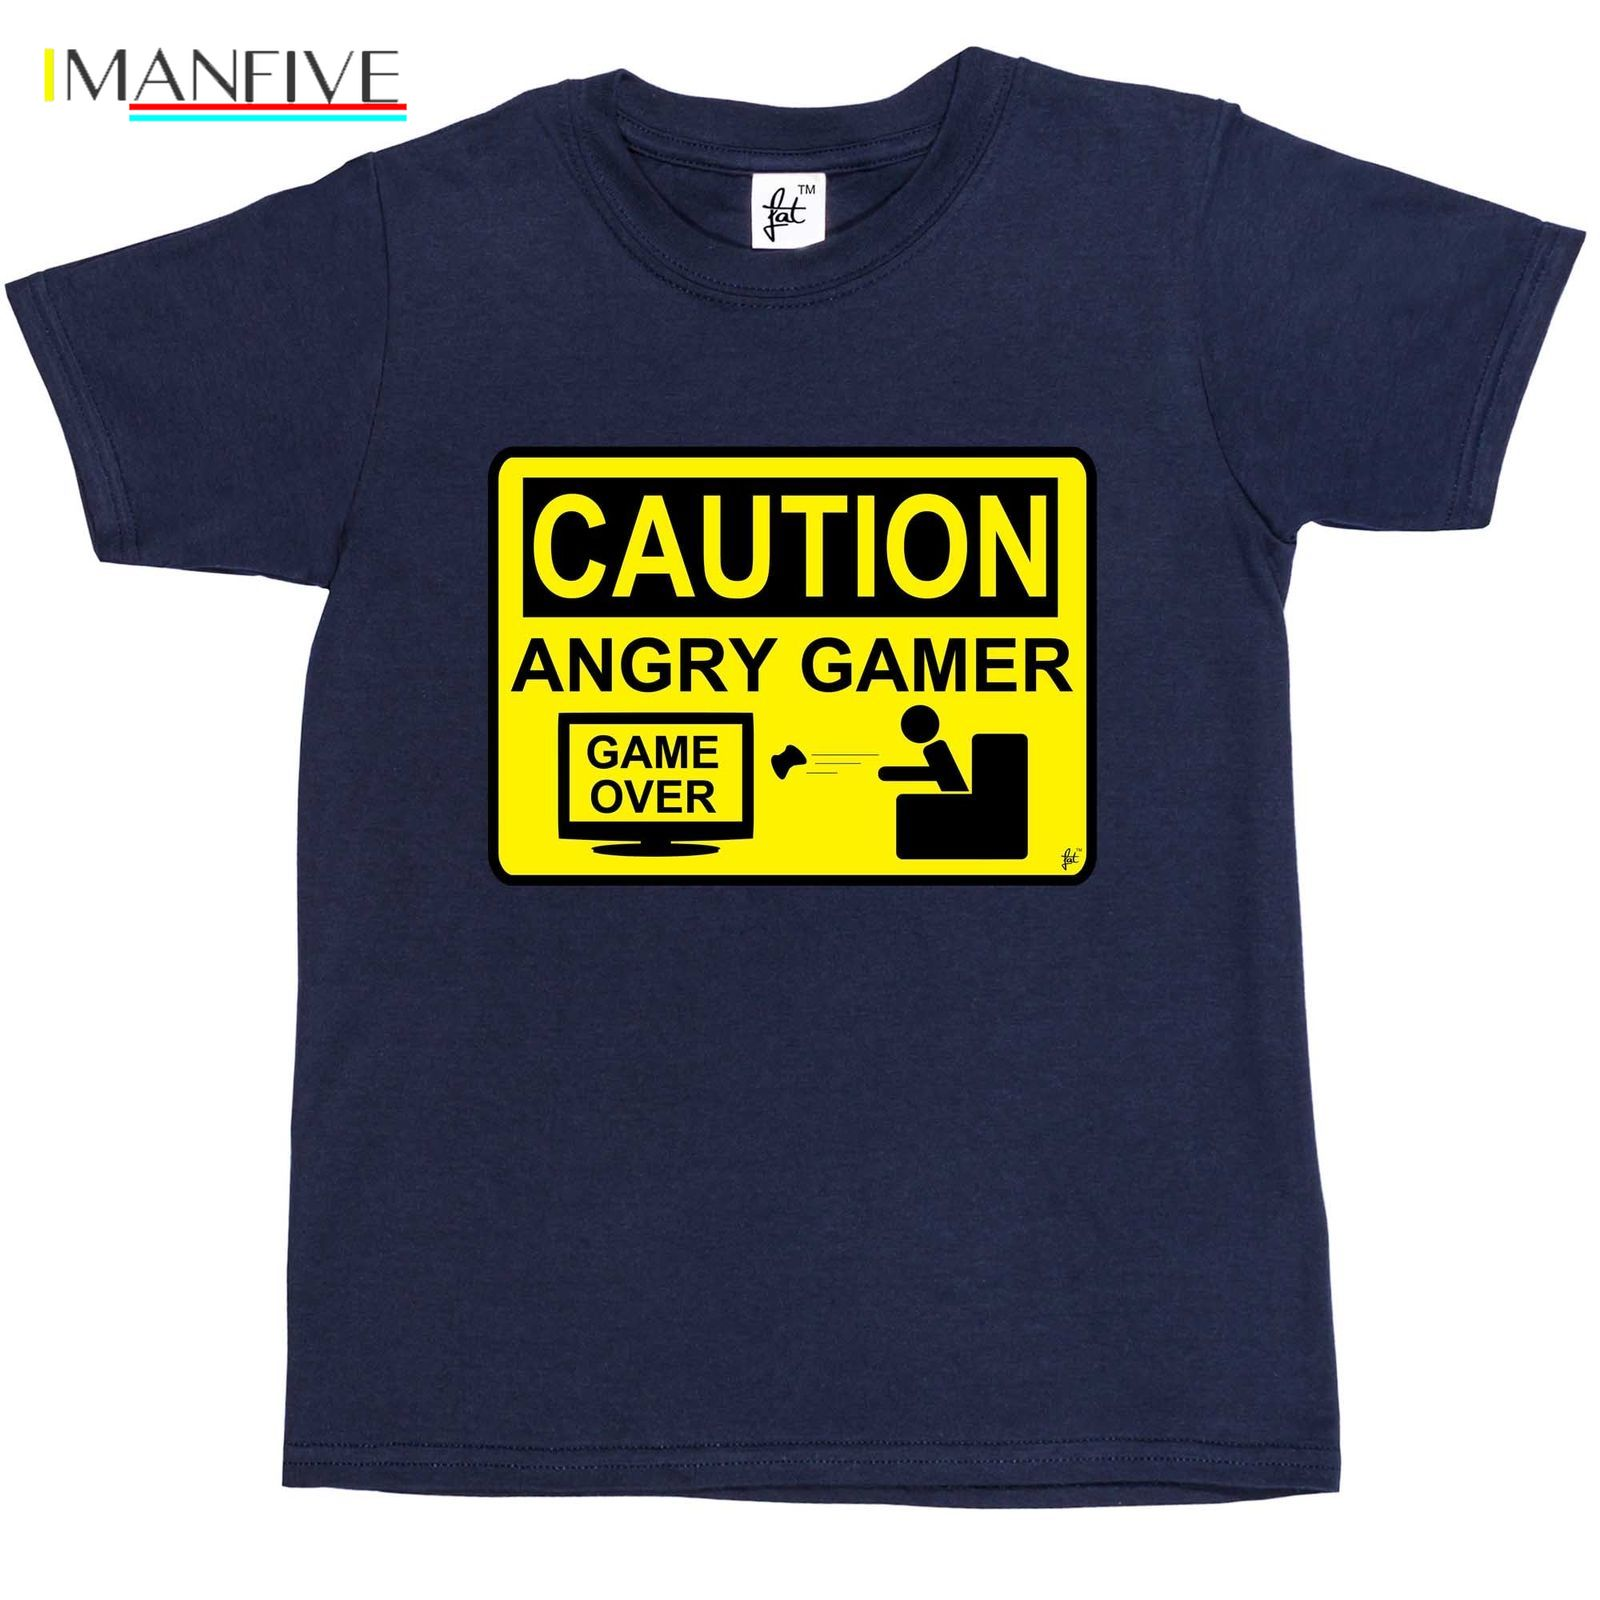 Caution Angry Gamer - Warning Sign Game Over Lost Kids Boys T-Shirt  Free shipping Tops t shirt Fashion Classic Unique